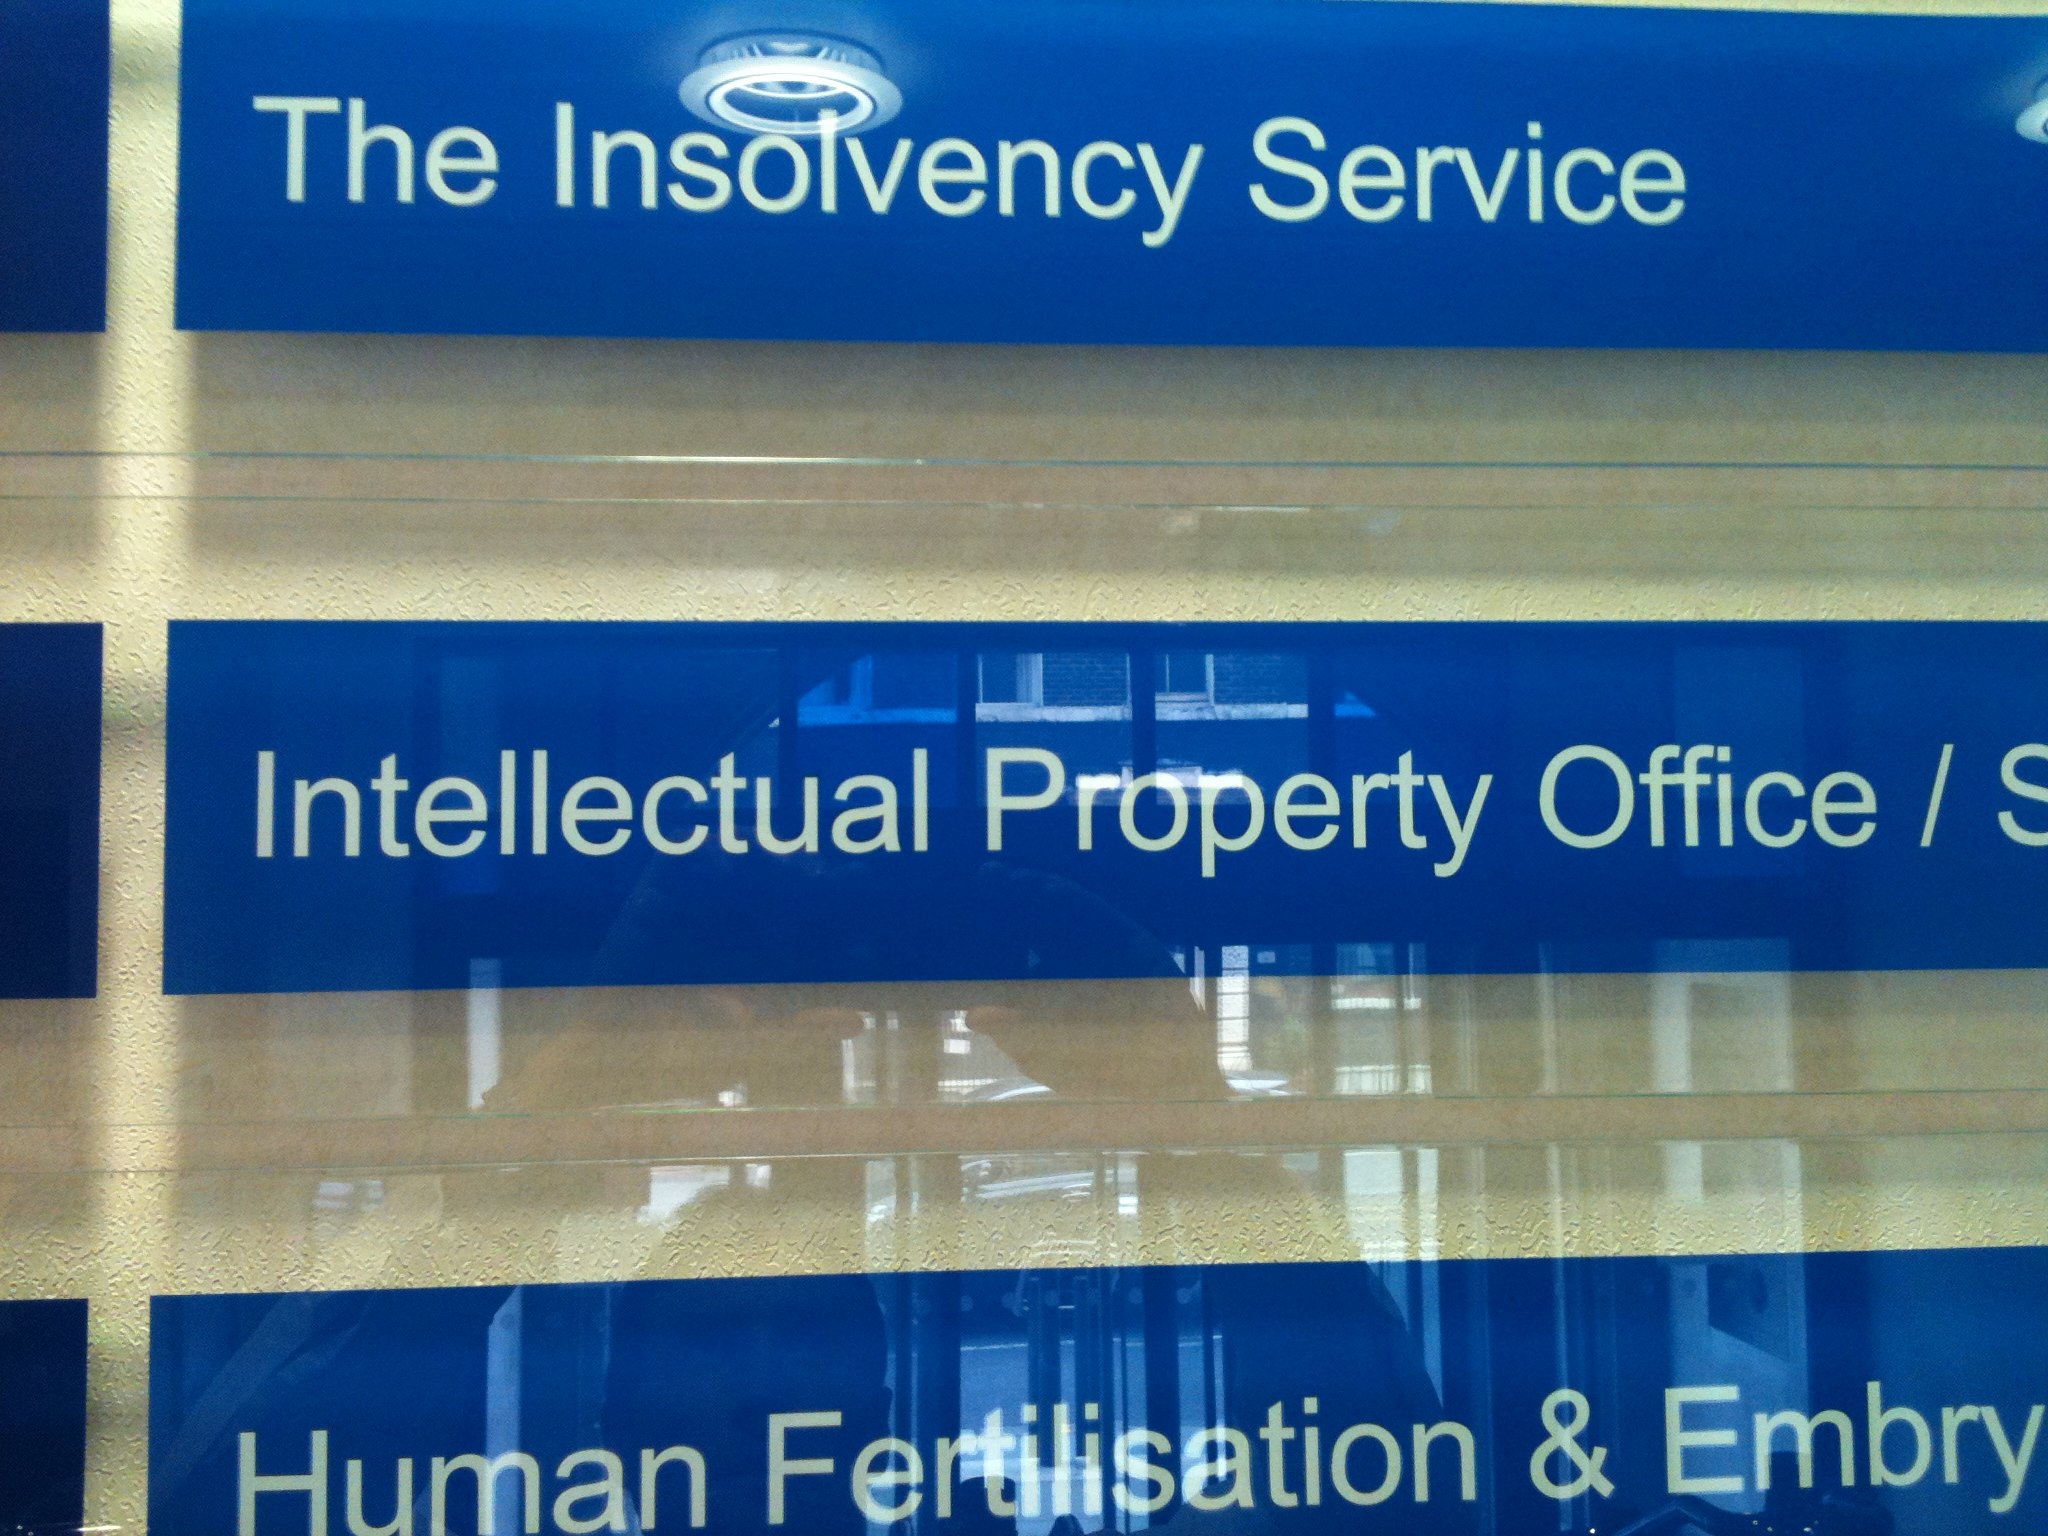 Intellectual Property Office main sign vinyl sign sticker by www.e-signs.co.uk Call us today for a competitive quote to design, make and Install frosted vinyl, tinted window film, cut vinyl sign stickers and digital printed vinyl.